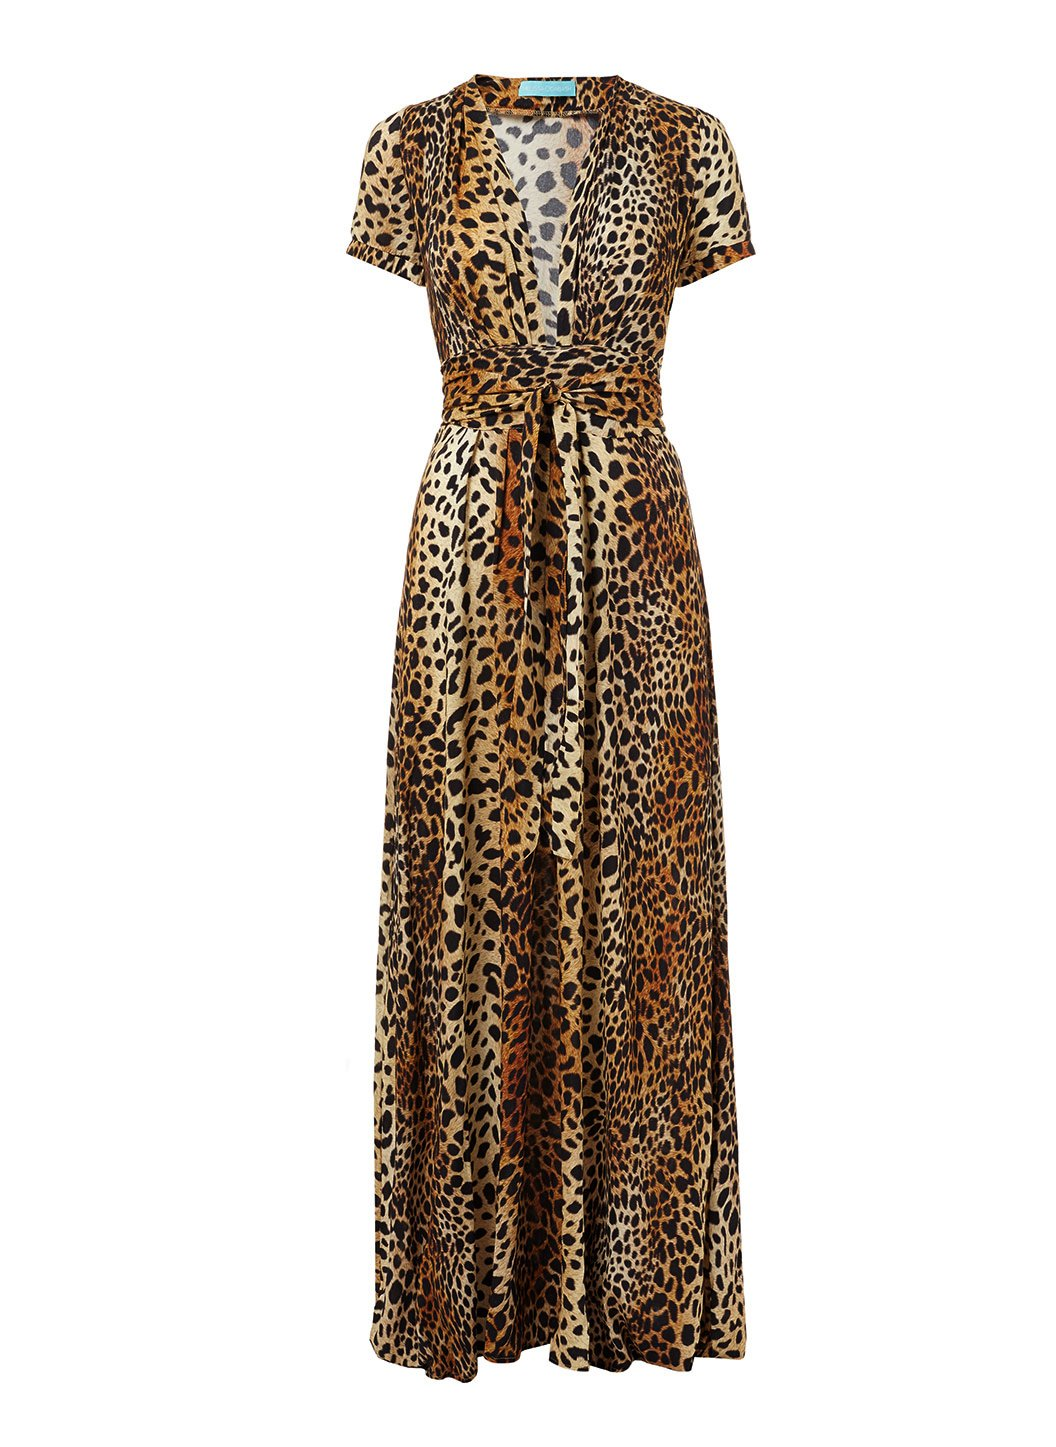 b70f7807eb72d7 lou cheetah vneck belted maxi dress 2019